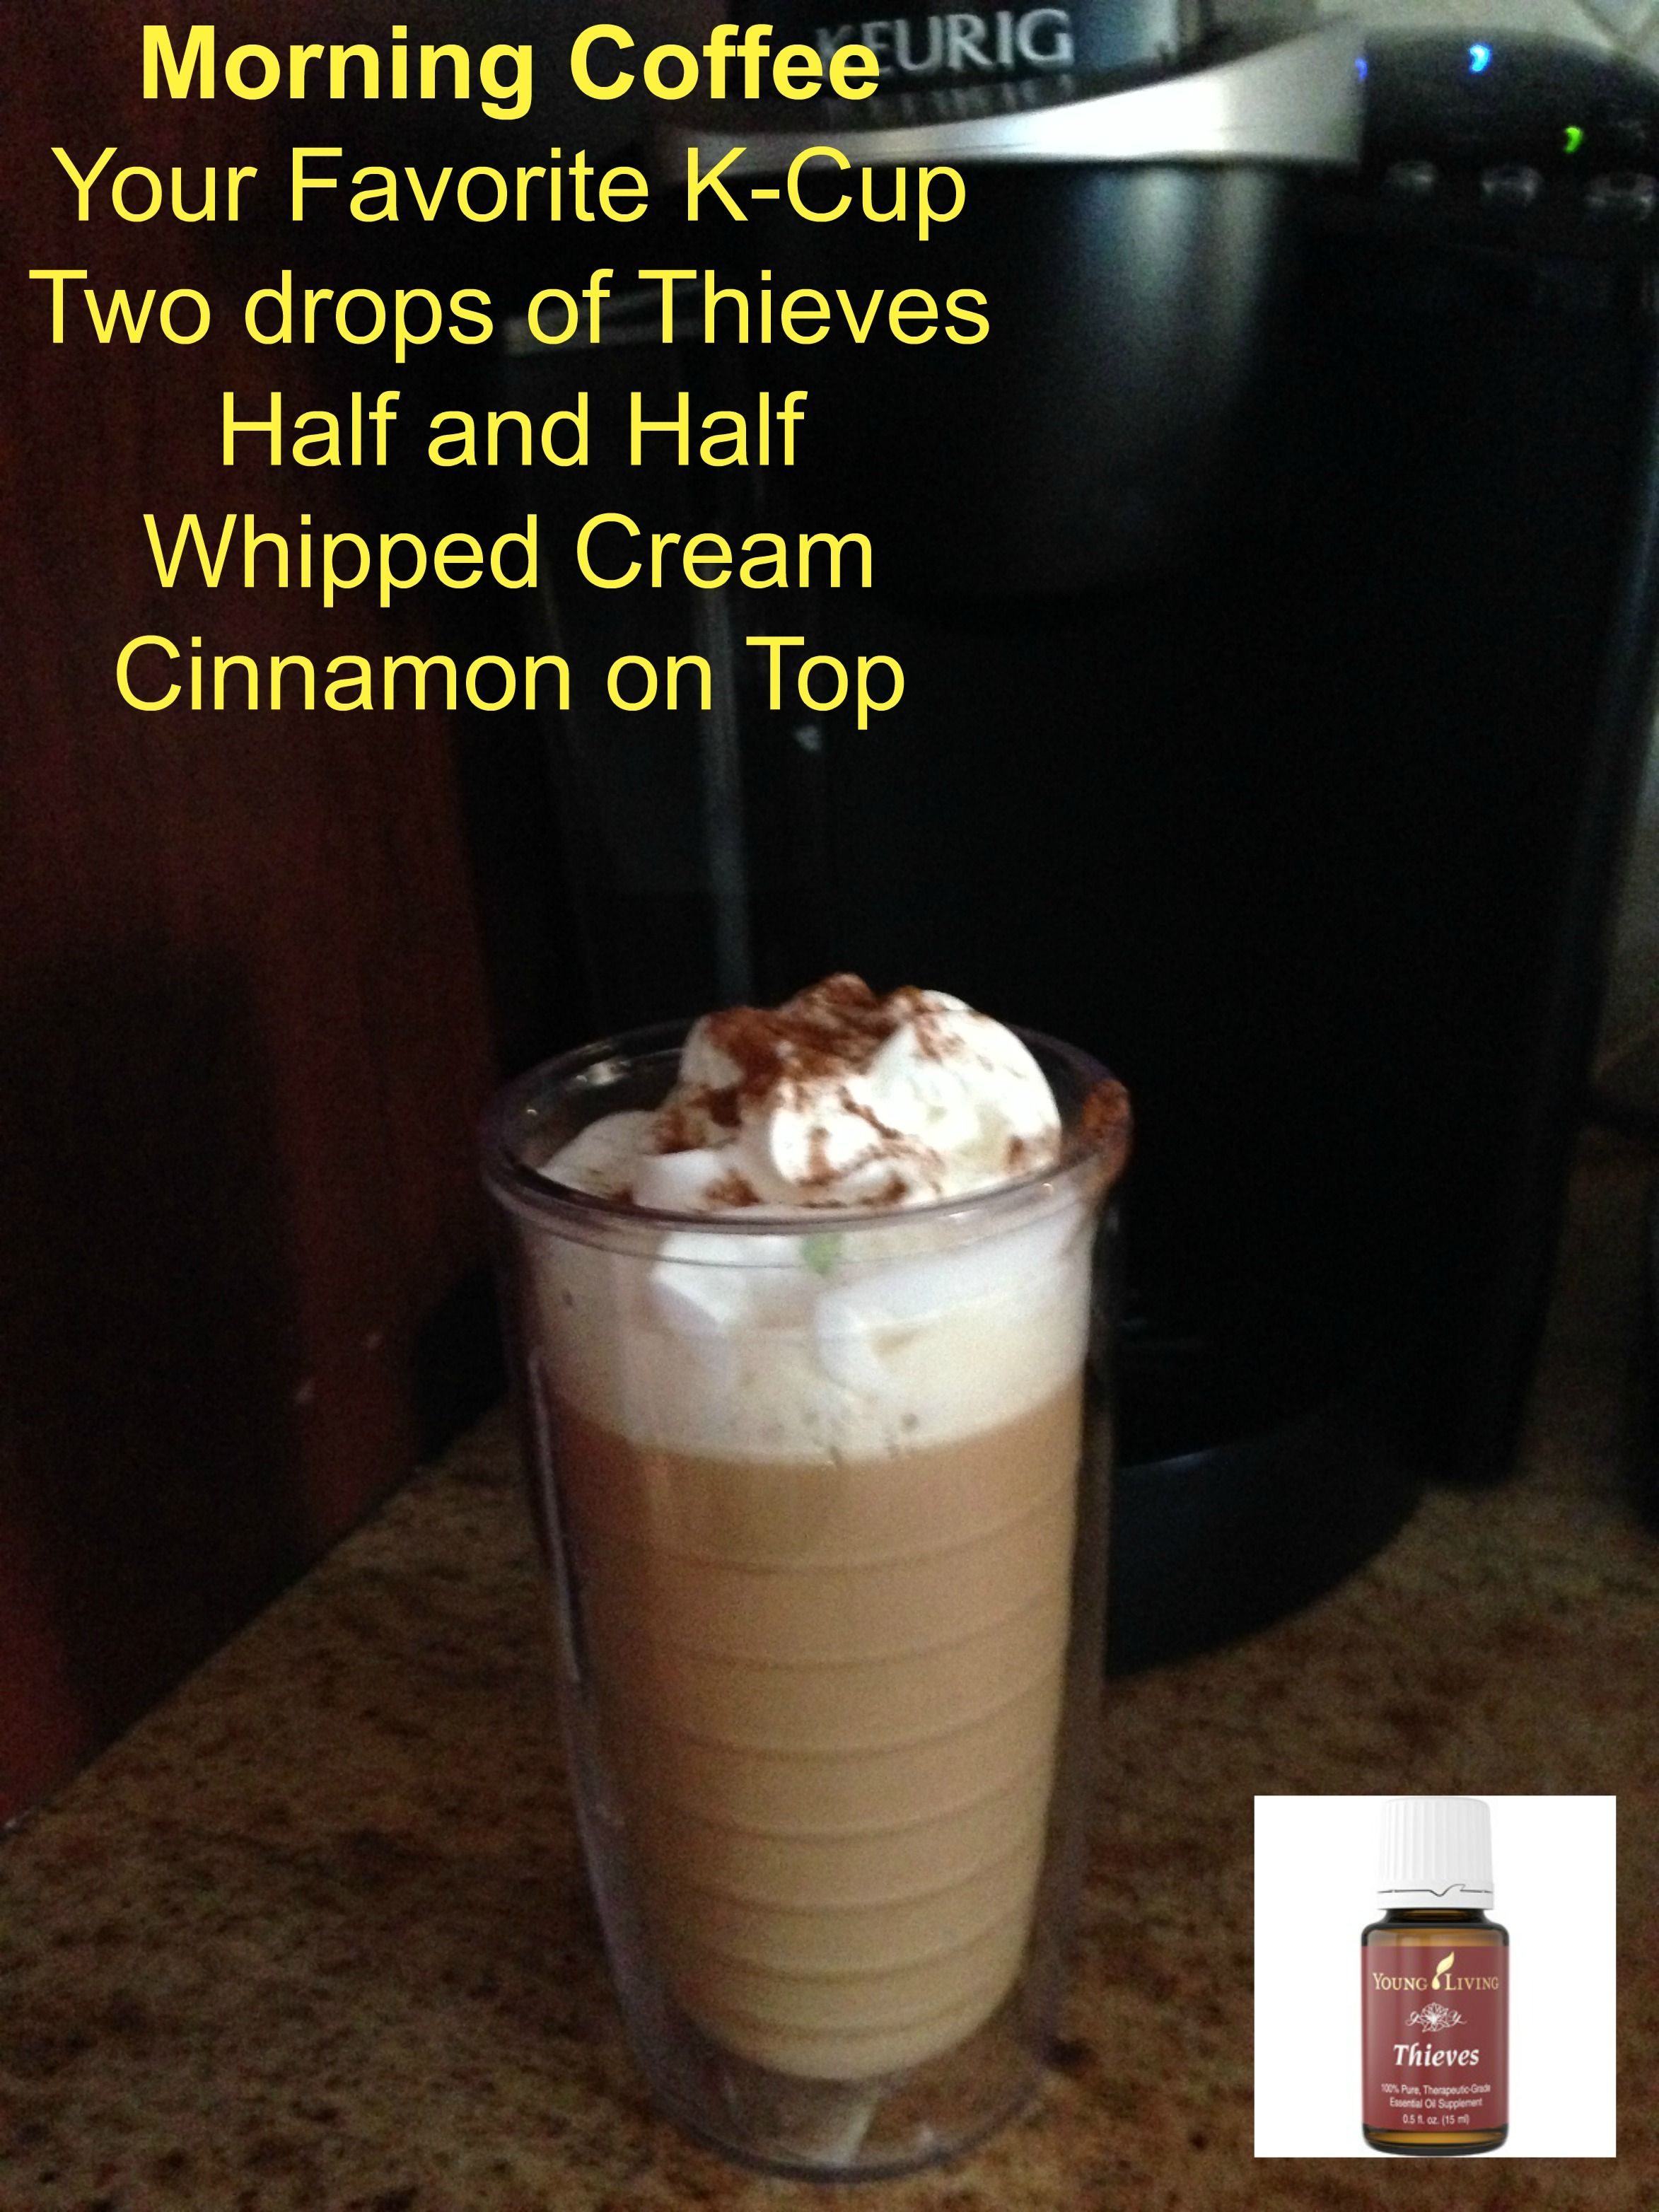 Morning Coffee Your Favorite KCup Two drops of Thieves